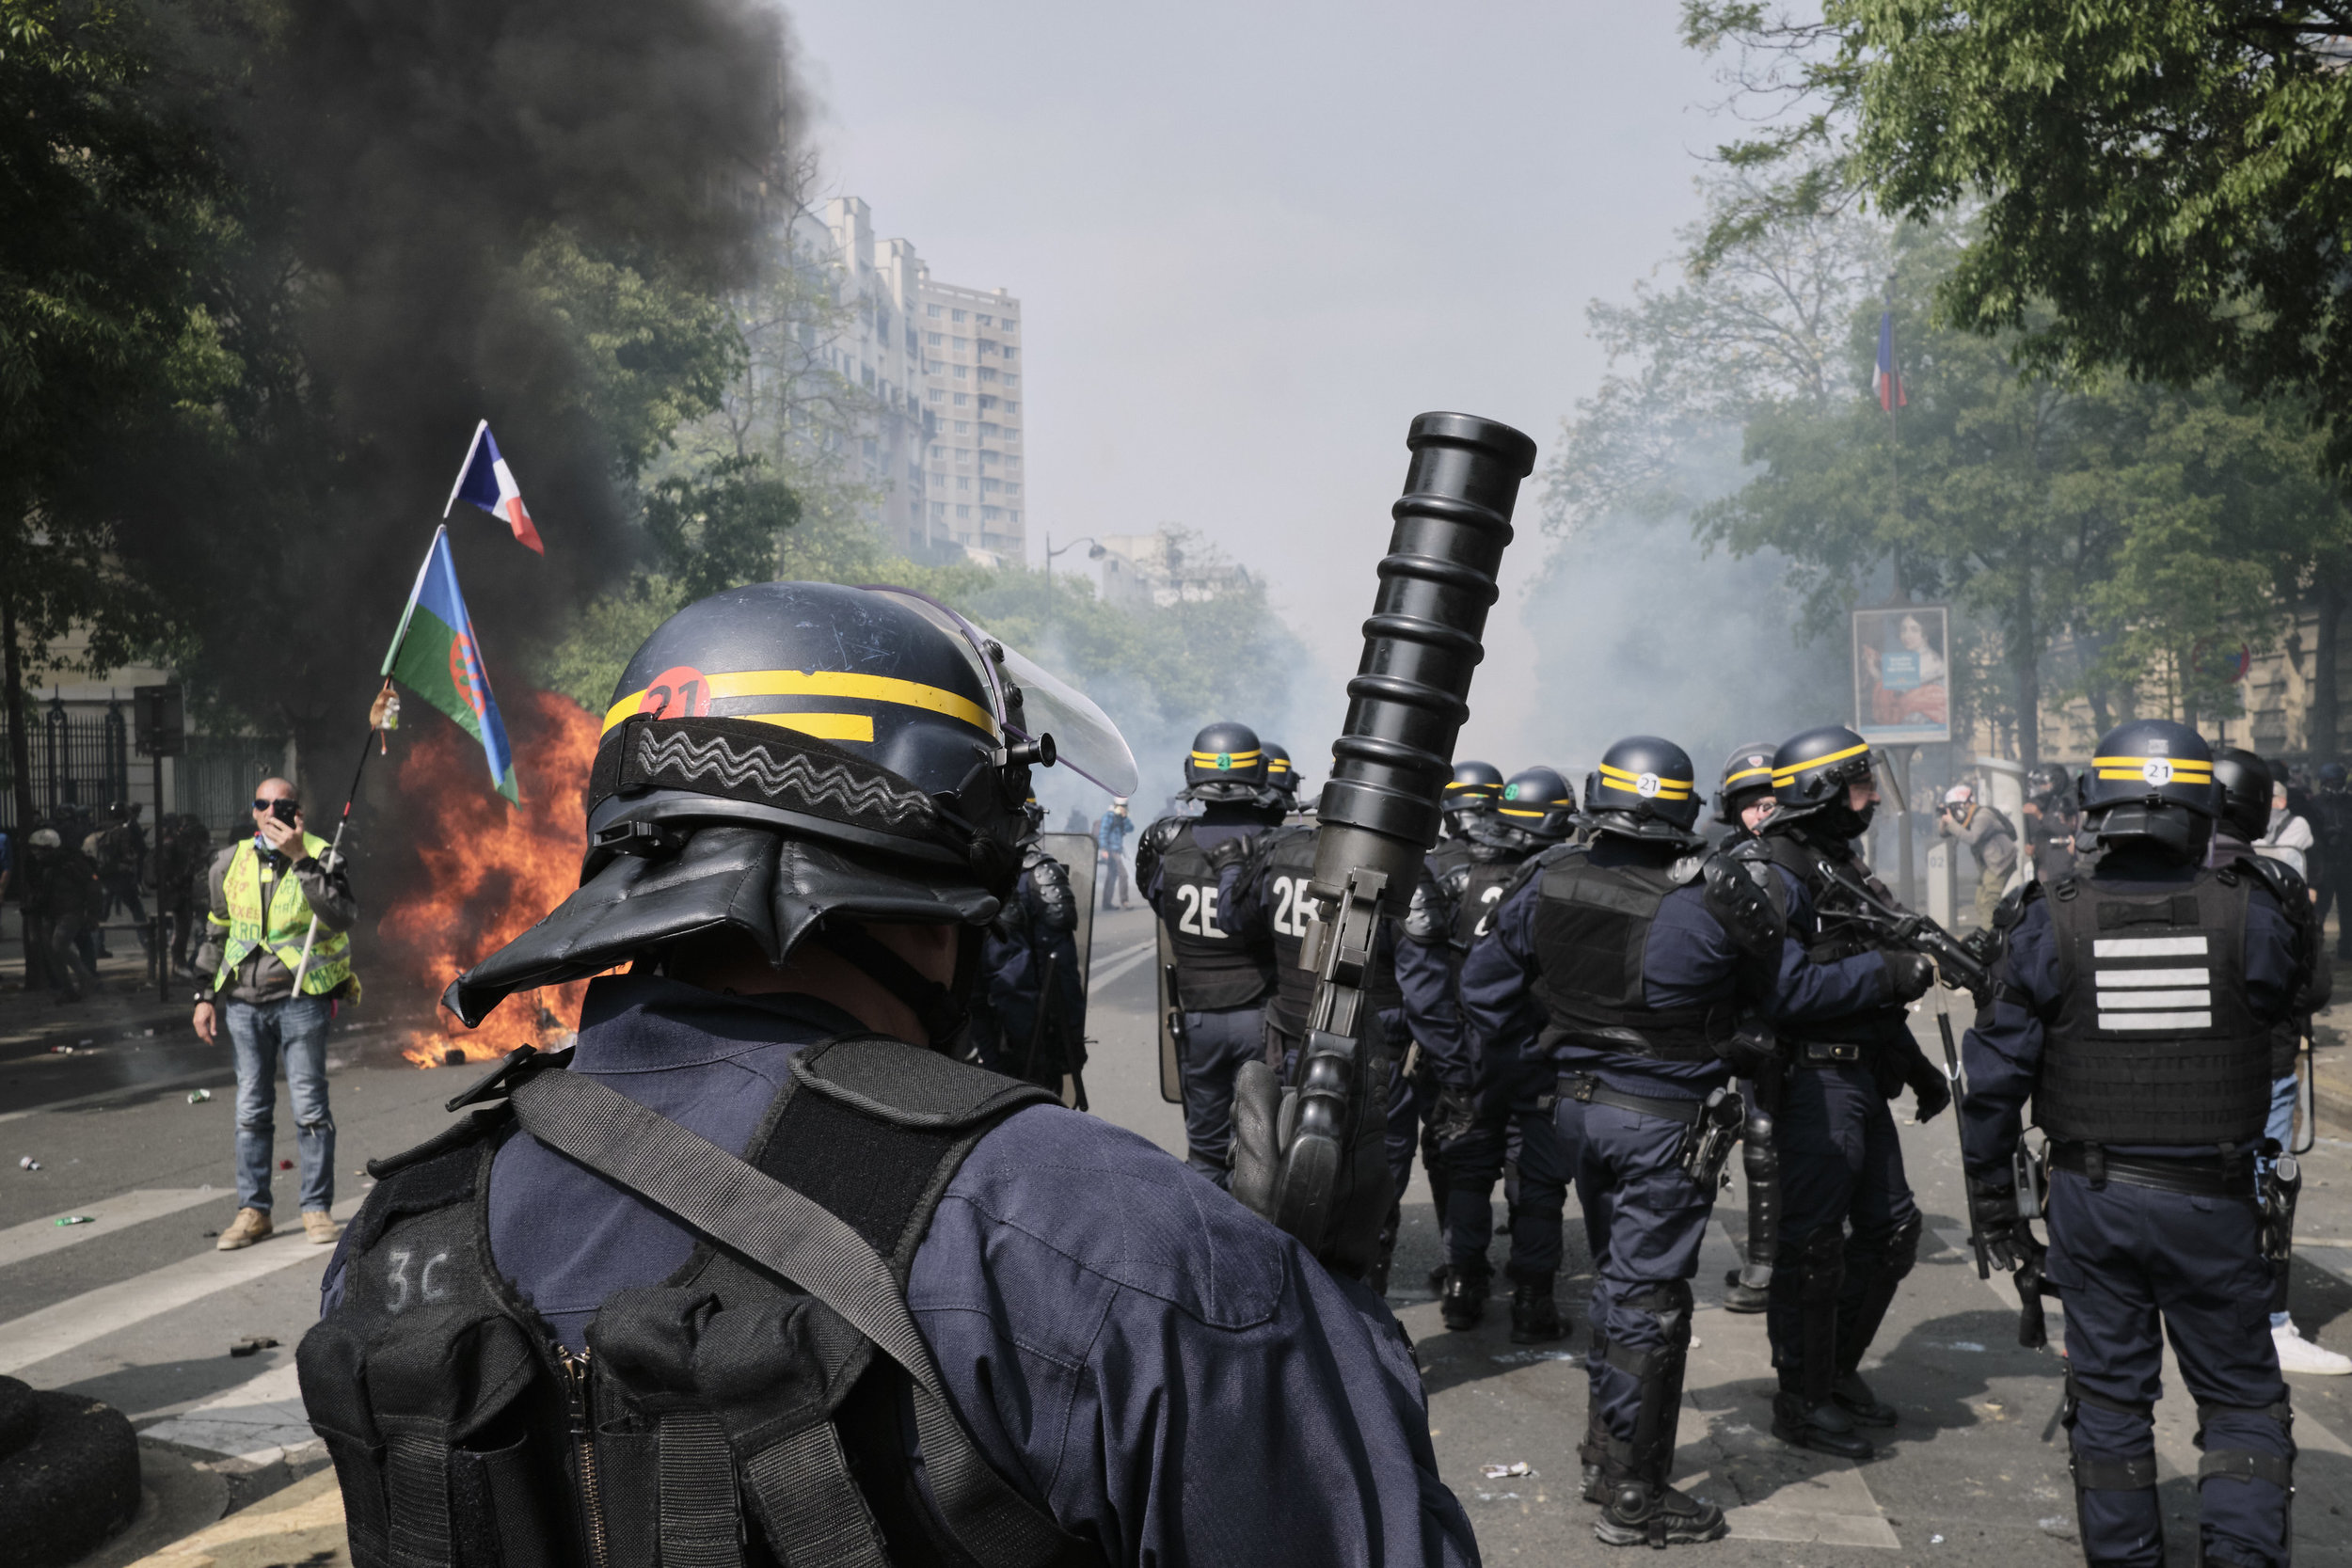 Riot police pushing the crowd of protesters further into The Avenue des Gebelins inorder to disperse the blockade and extinguish the fire.